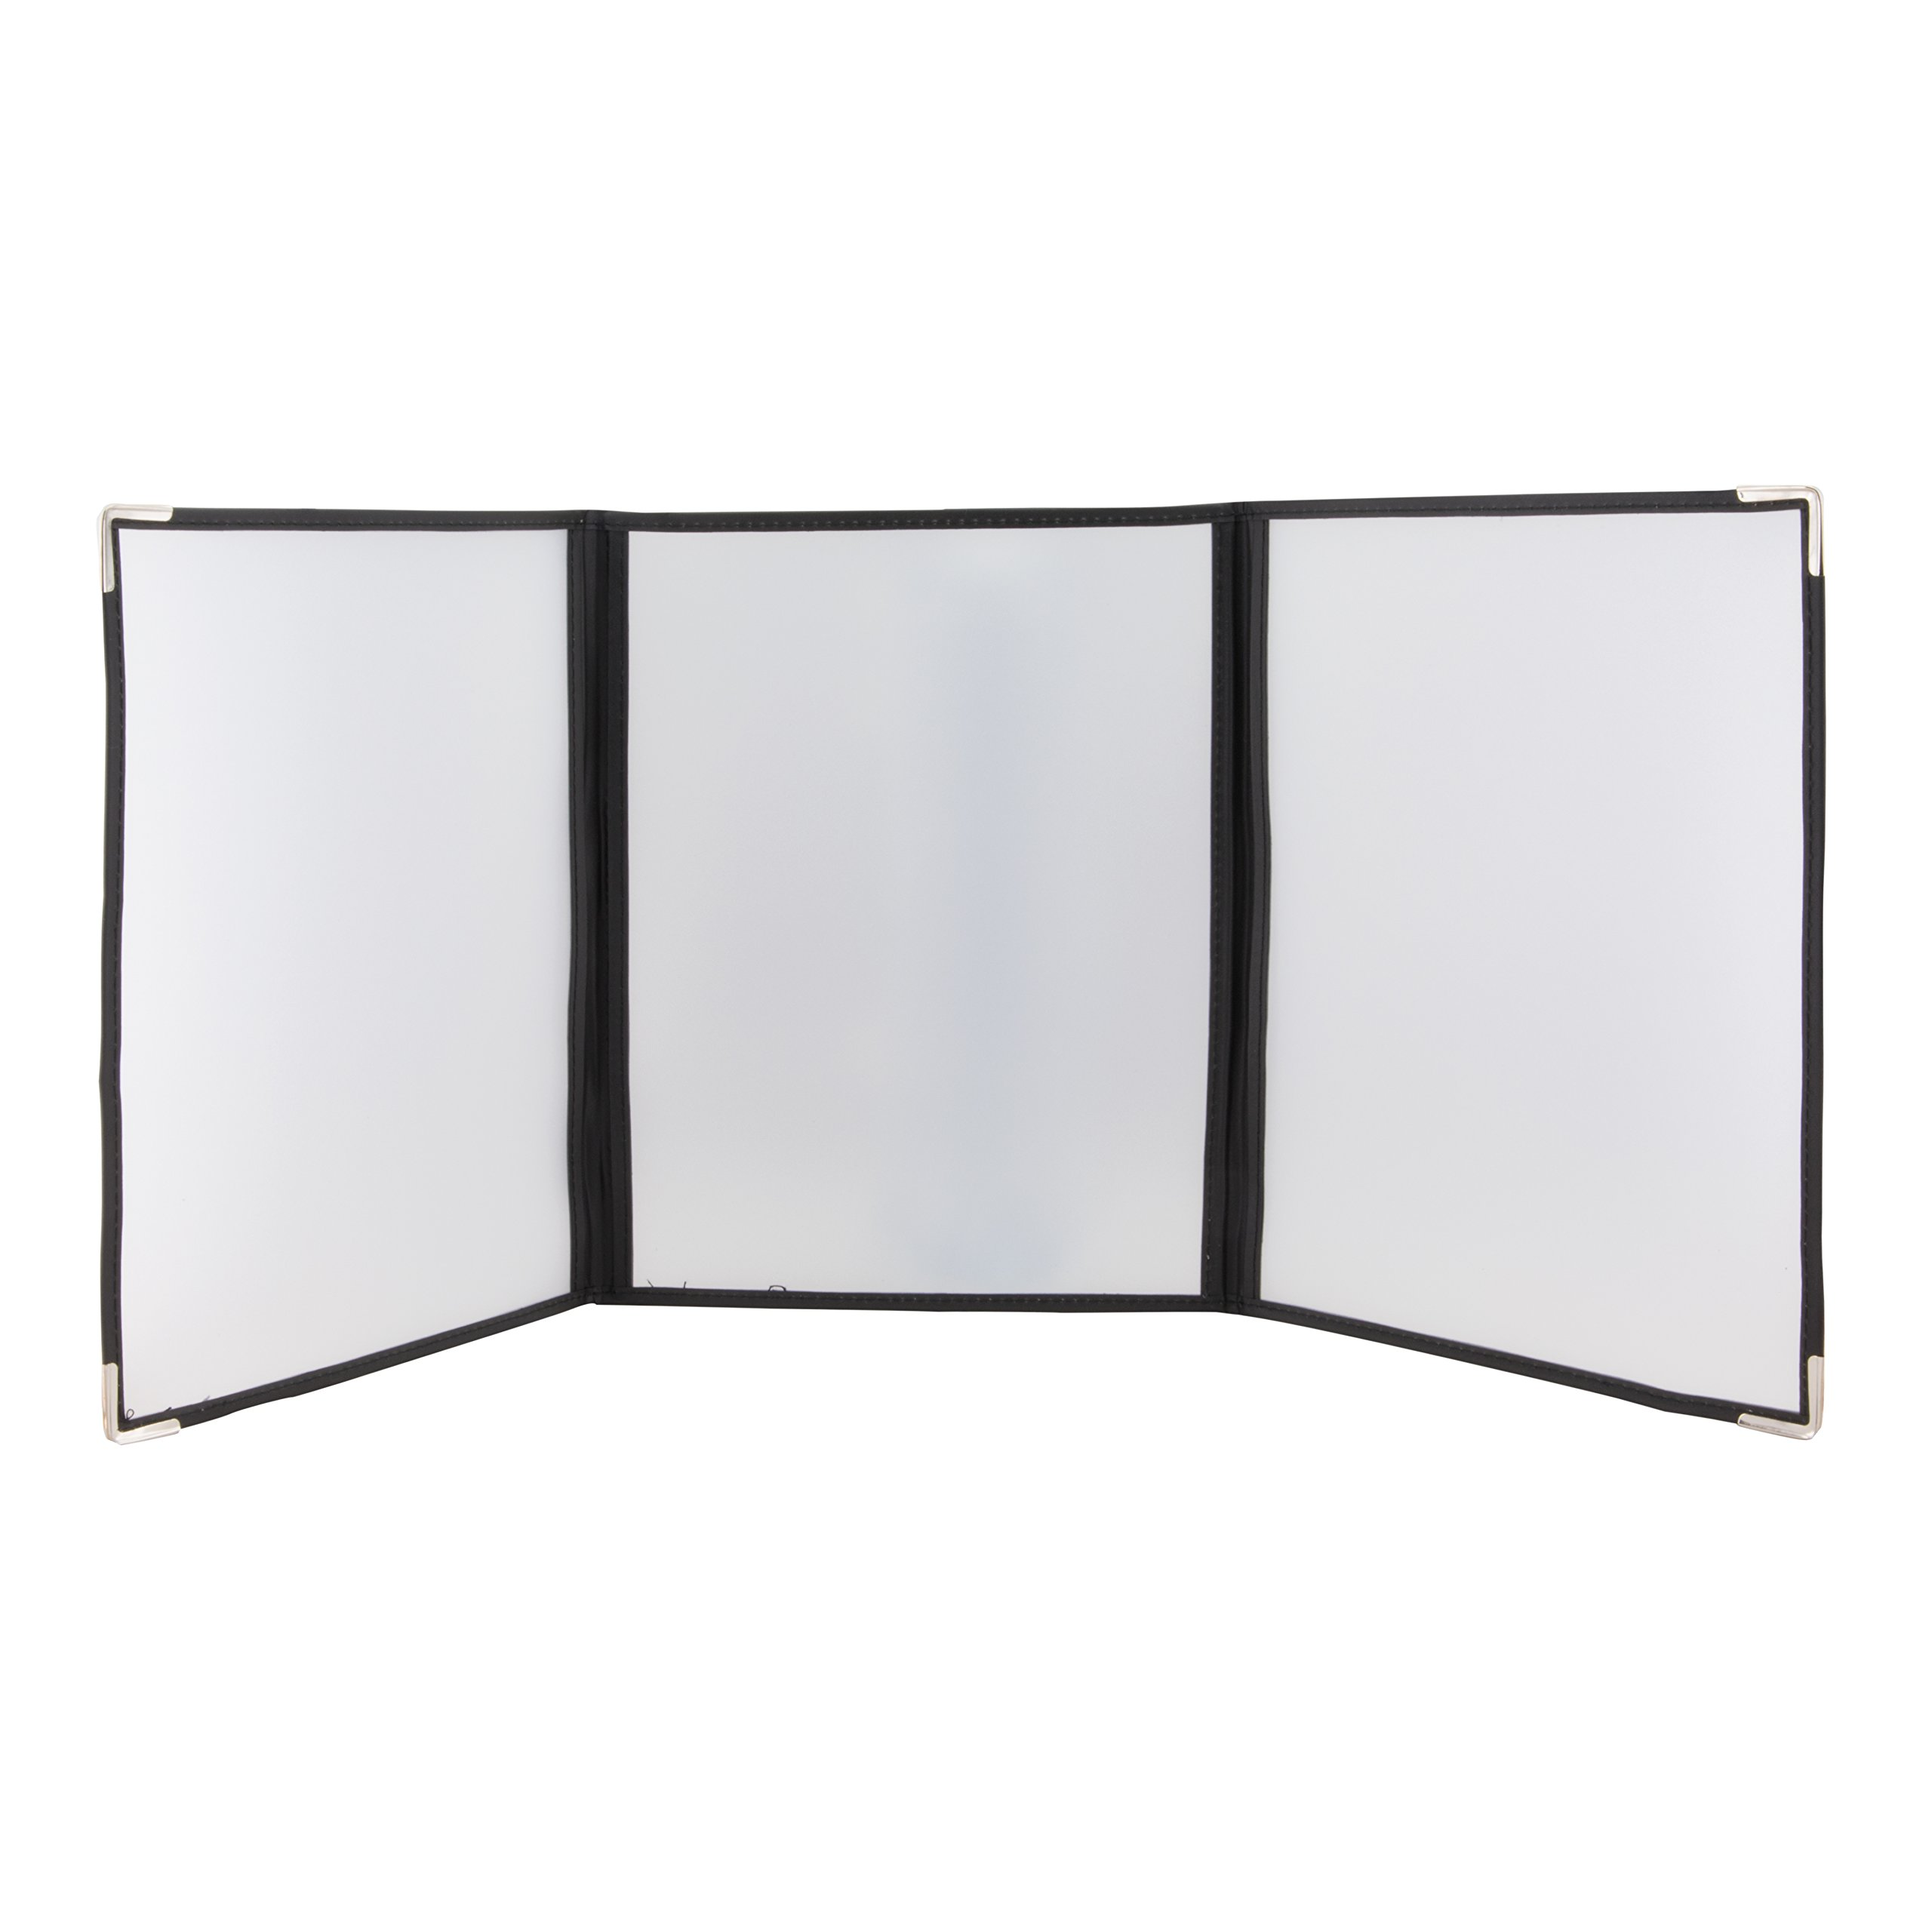 18 Pack of Triple Fold Out Page Restaurant Menu Cover Holders - Transparent - Double Stitched - Metal Corners - Black